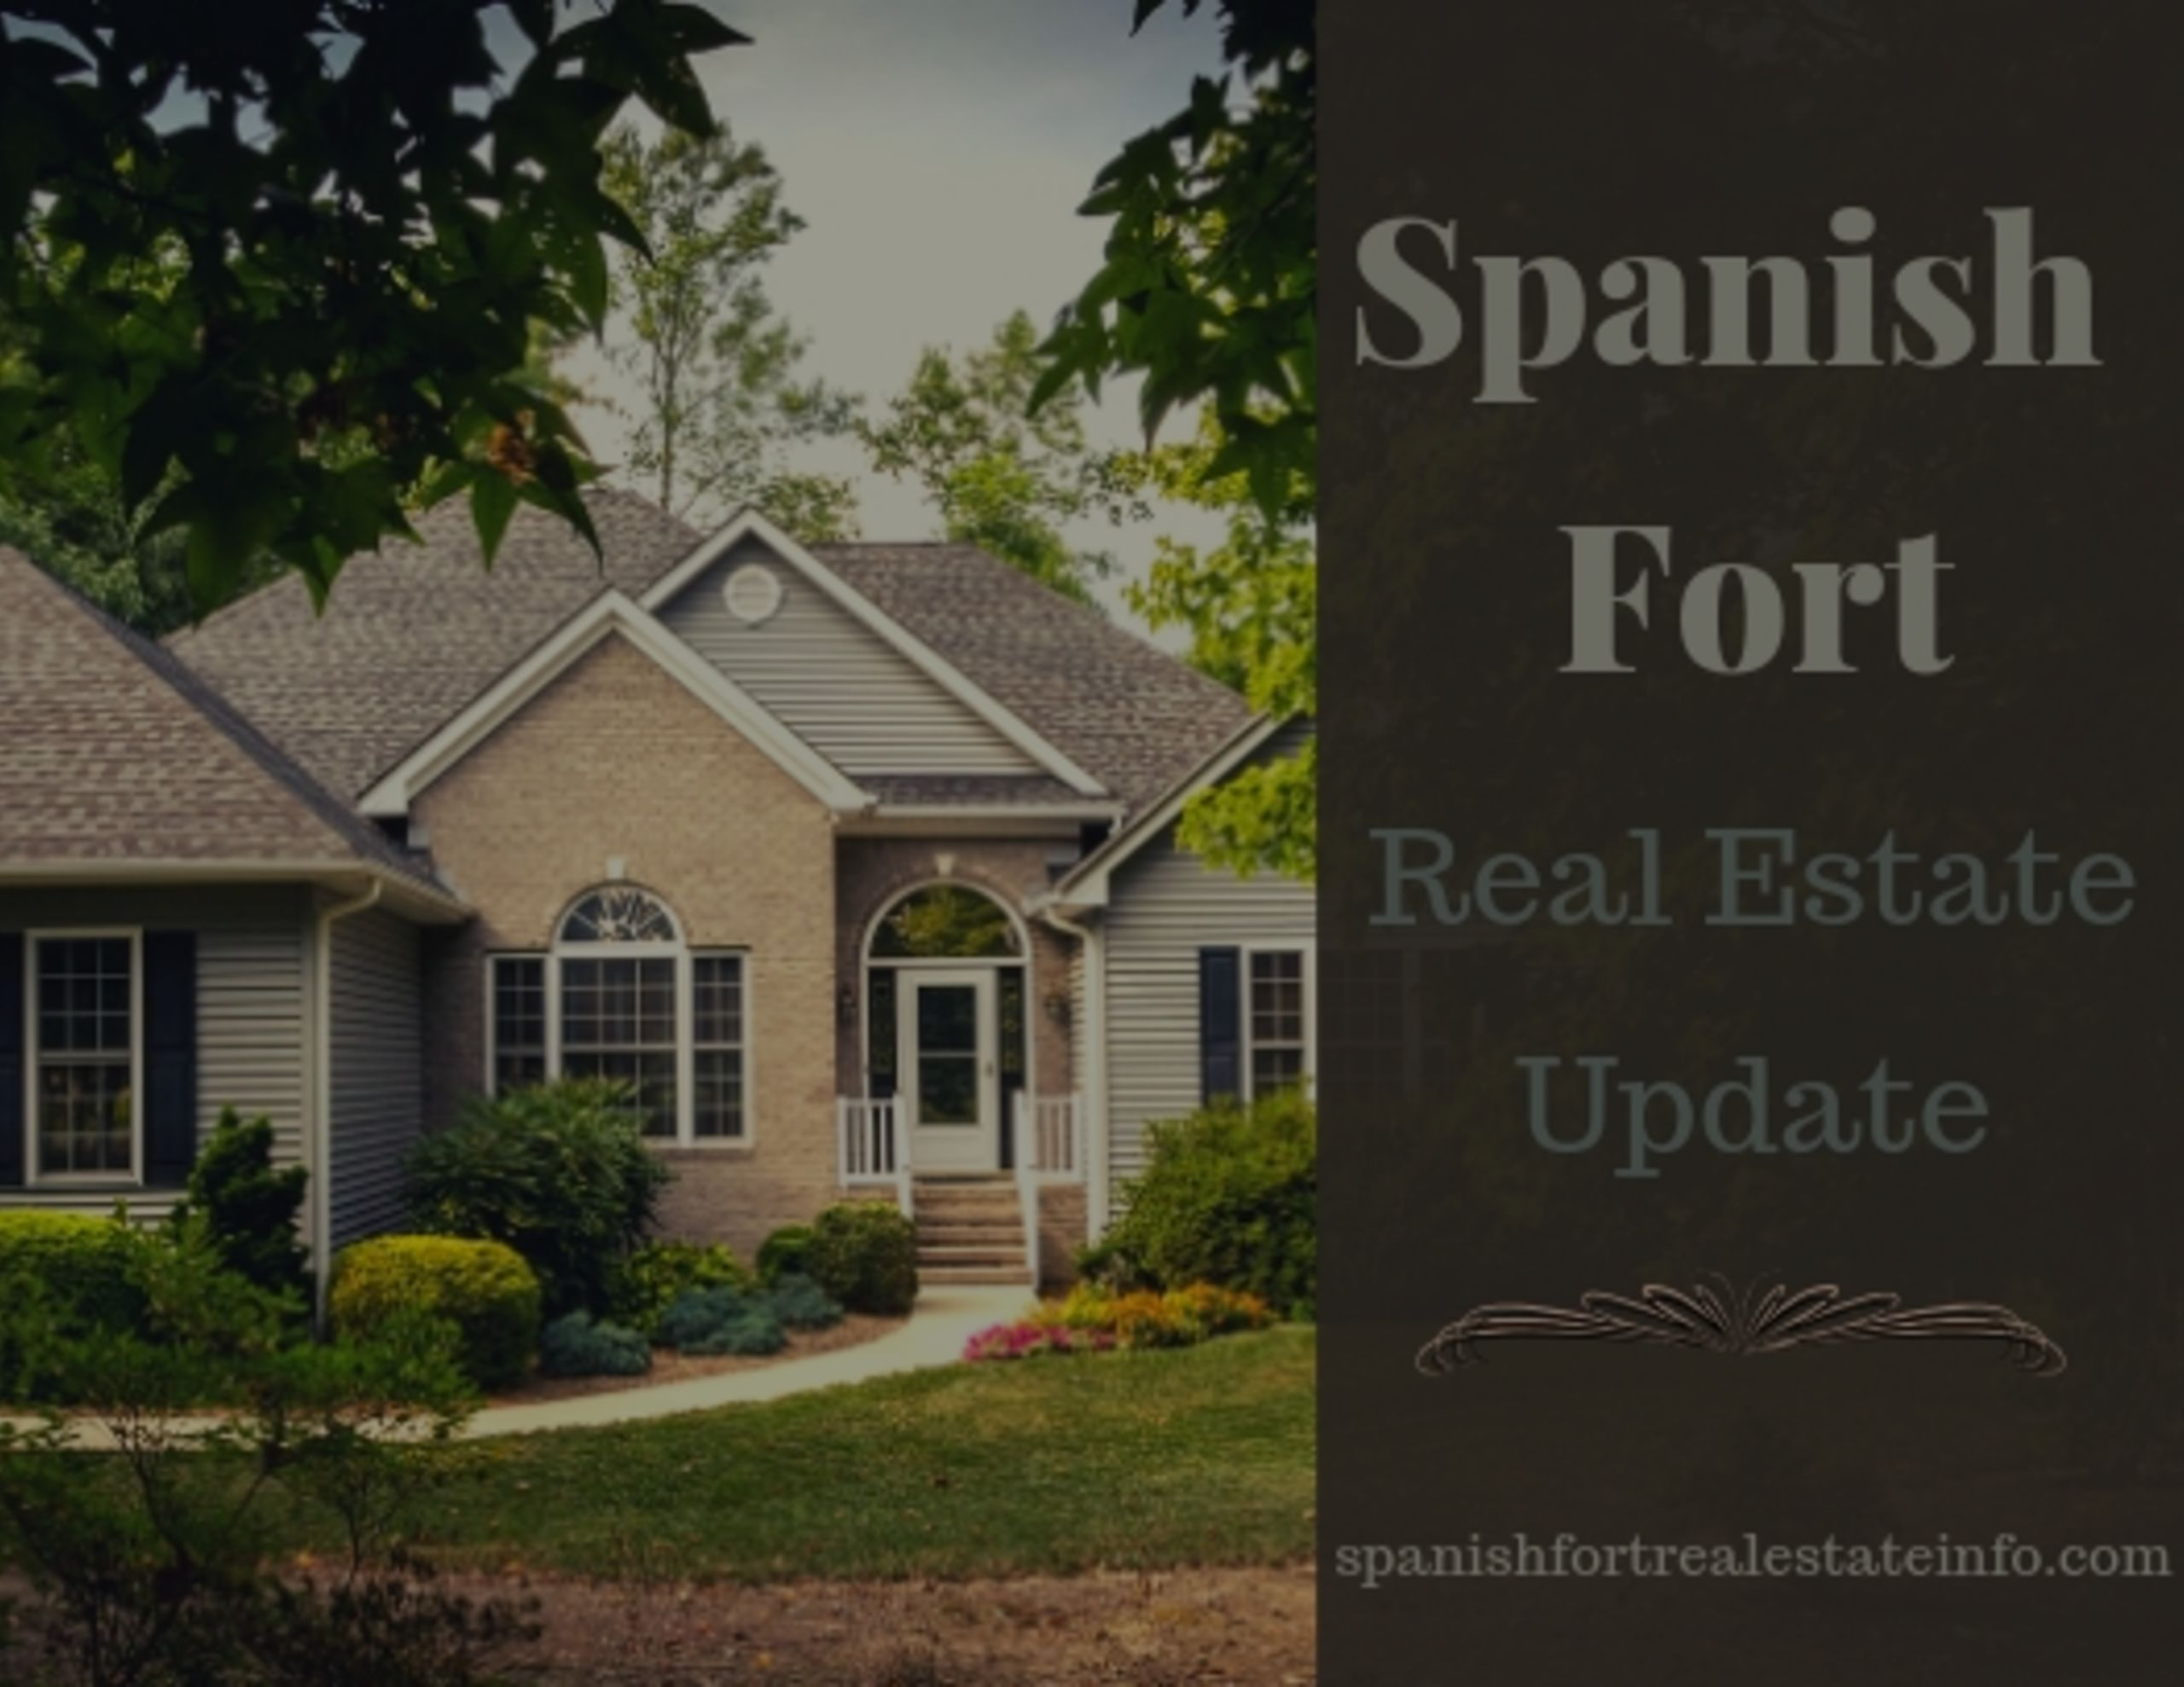 Spanish Fort Real Estate Update – Jan 2019